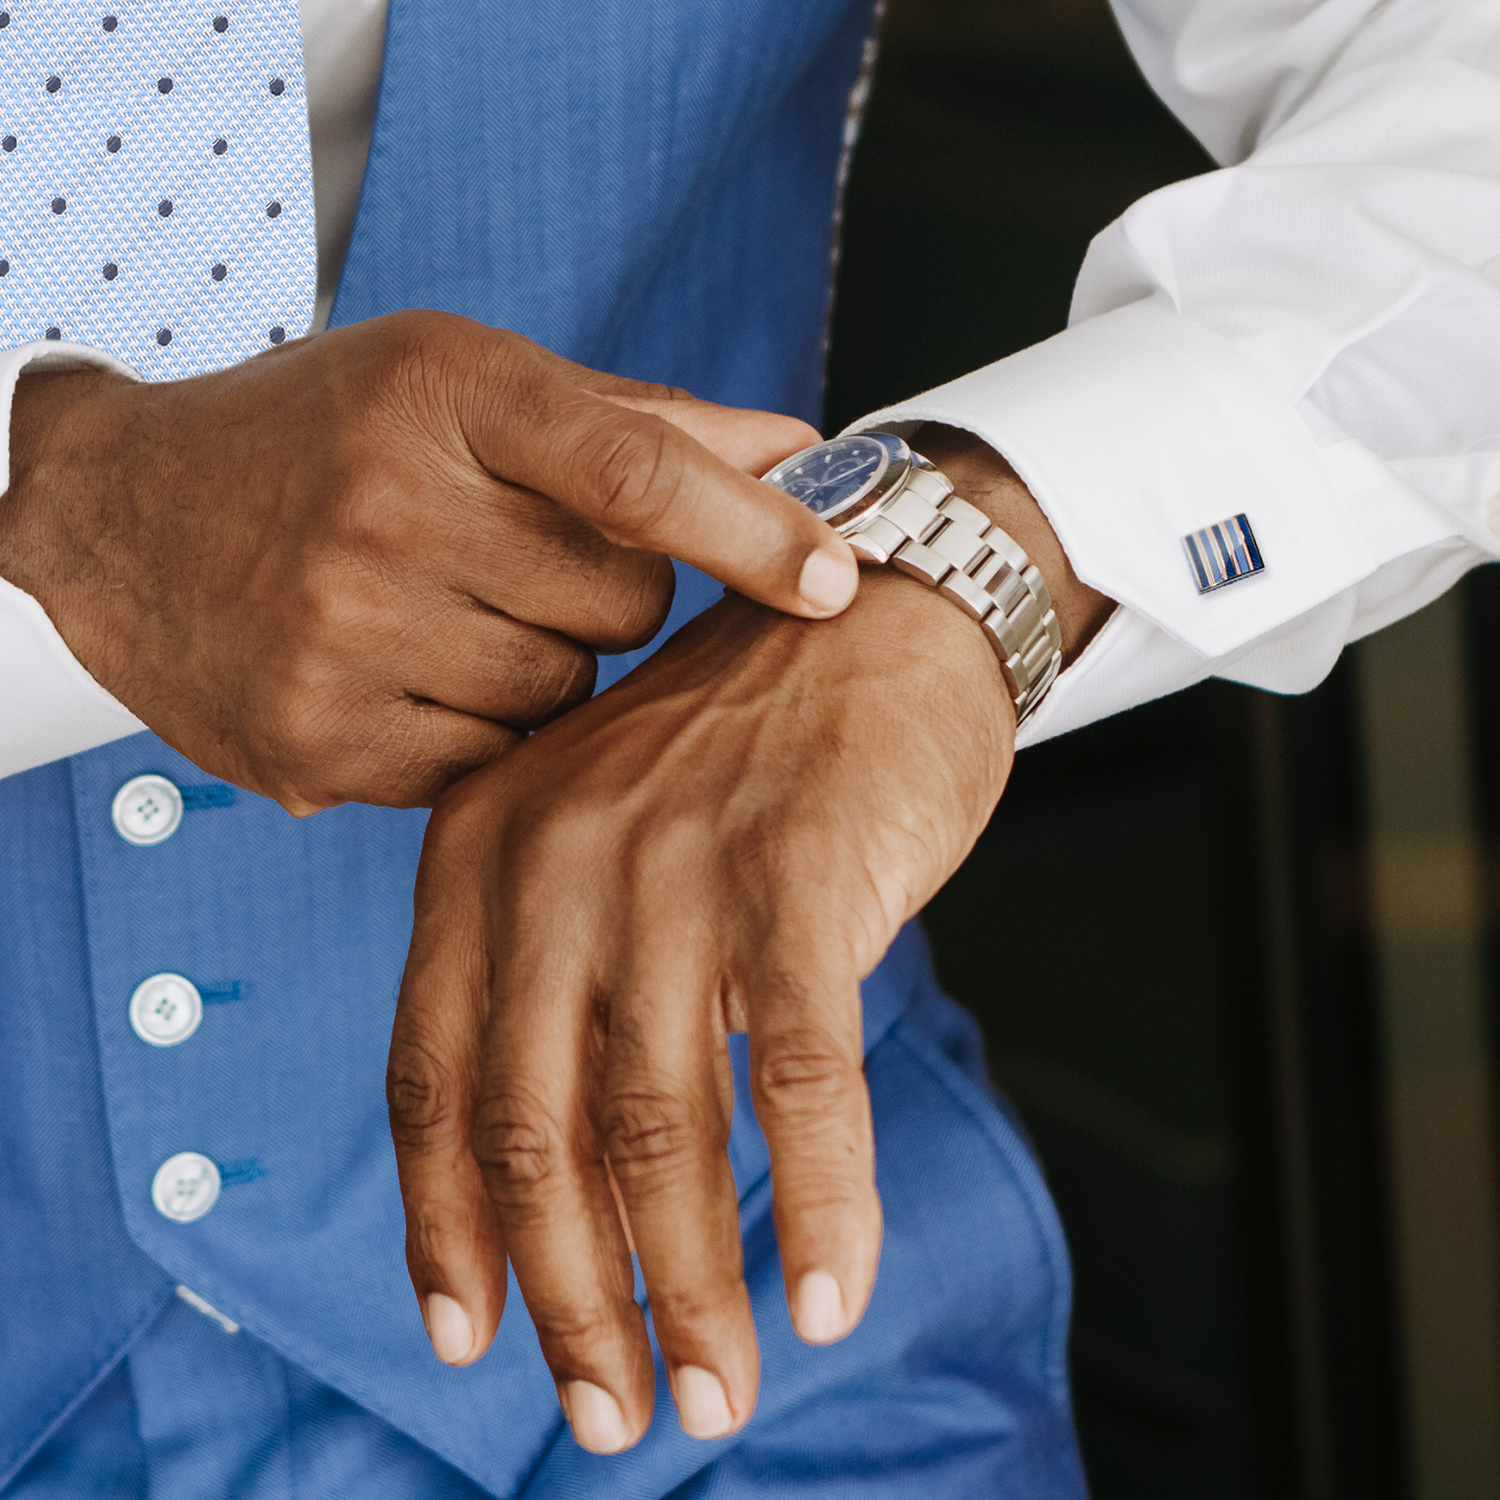 African American groom adjusting watch with cufflinks on